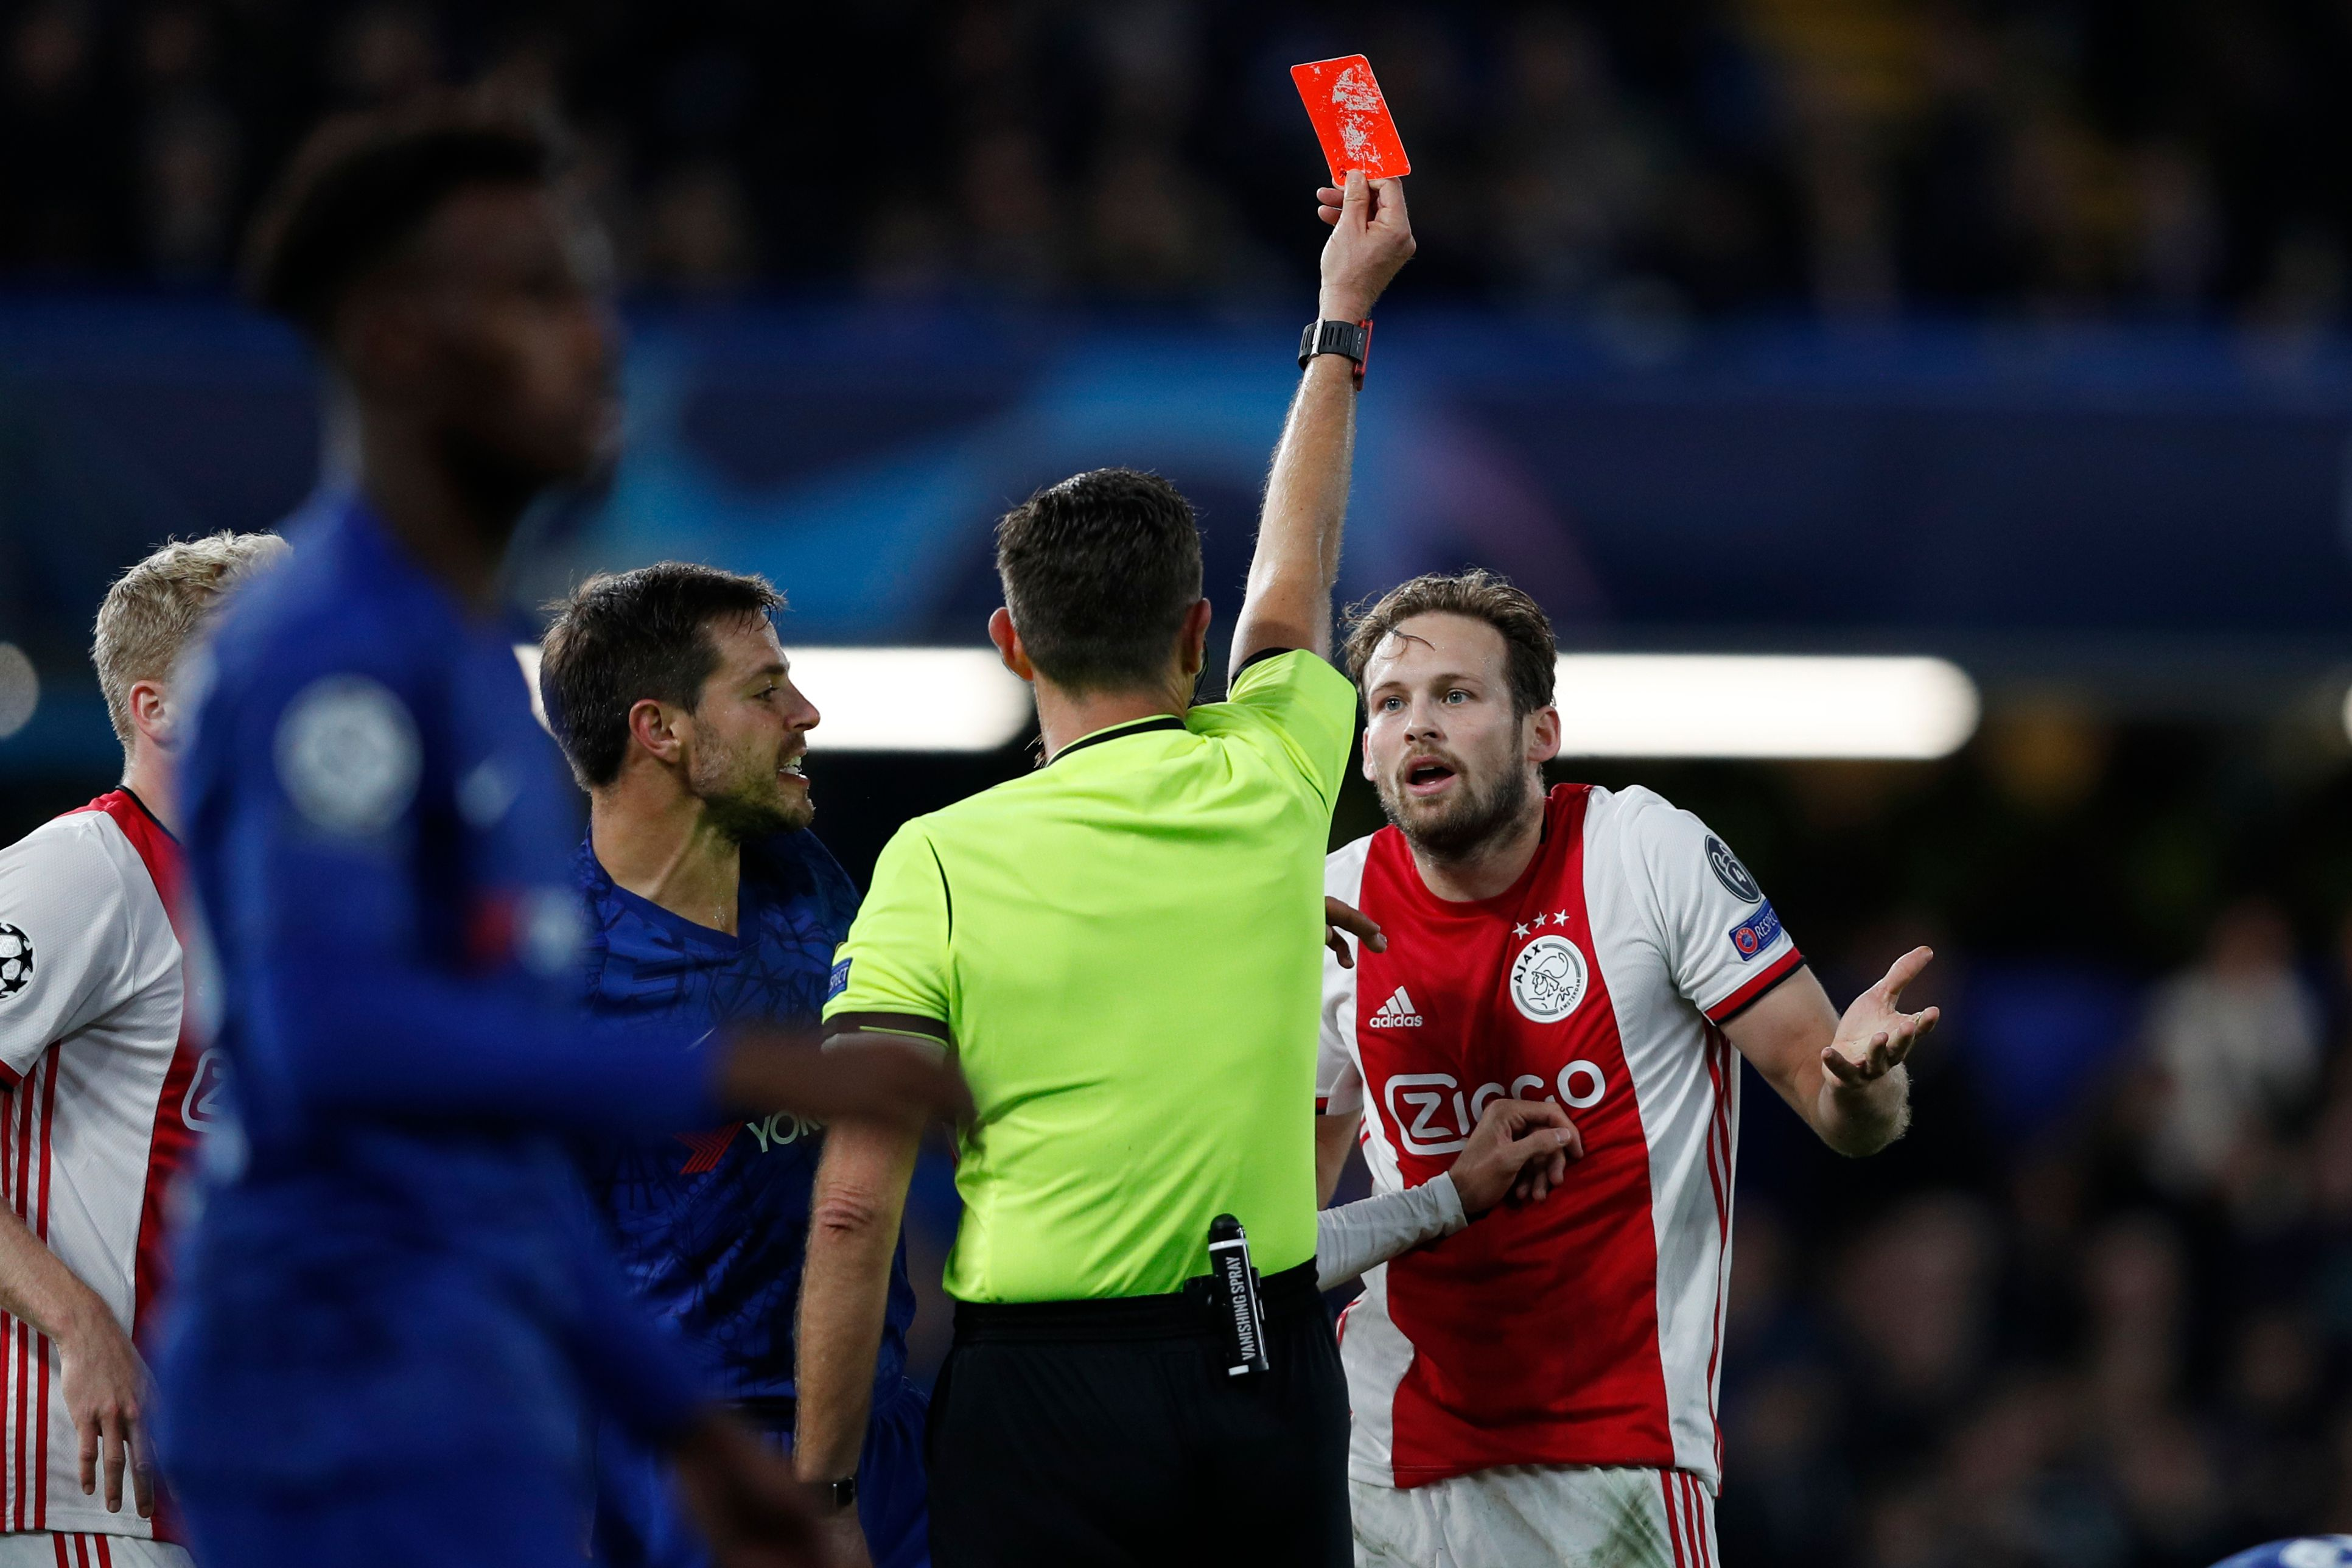 Ajax's Dutch defender Daley Blind (R) reacts as he is shown a red card by Italian referee Gianluca Rocch